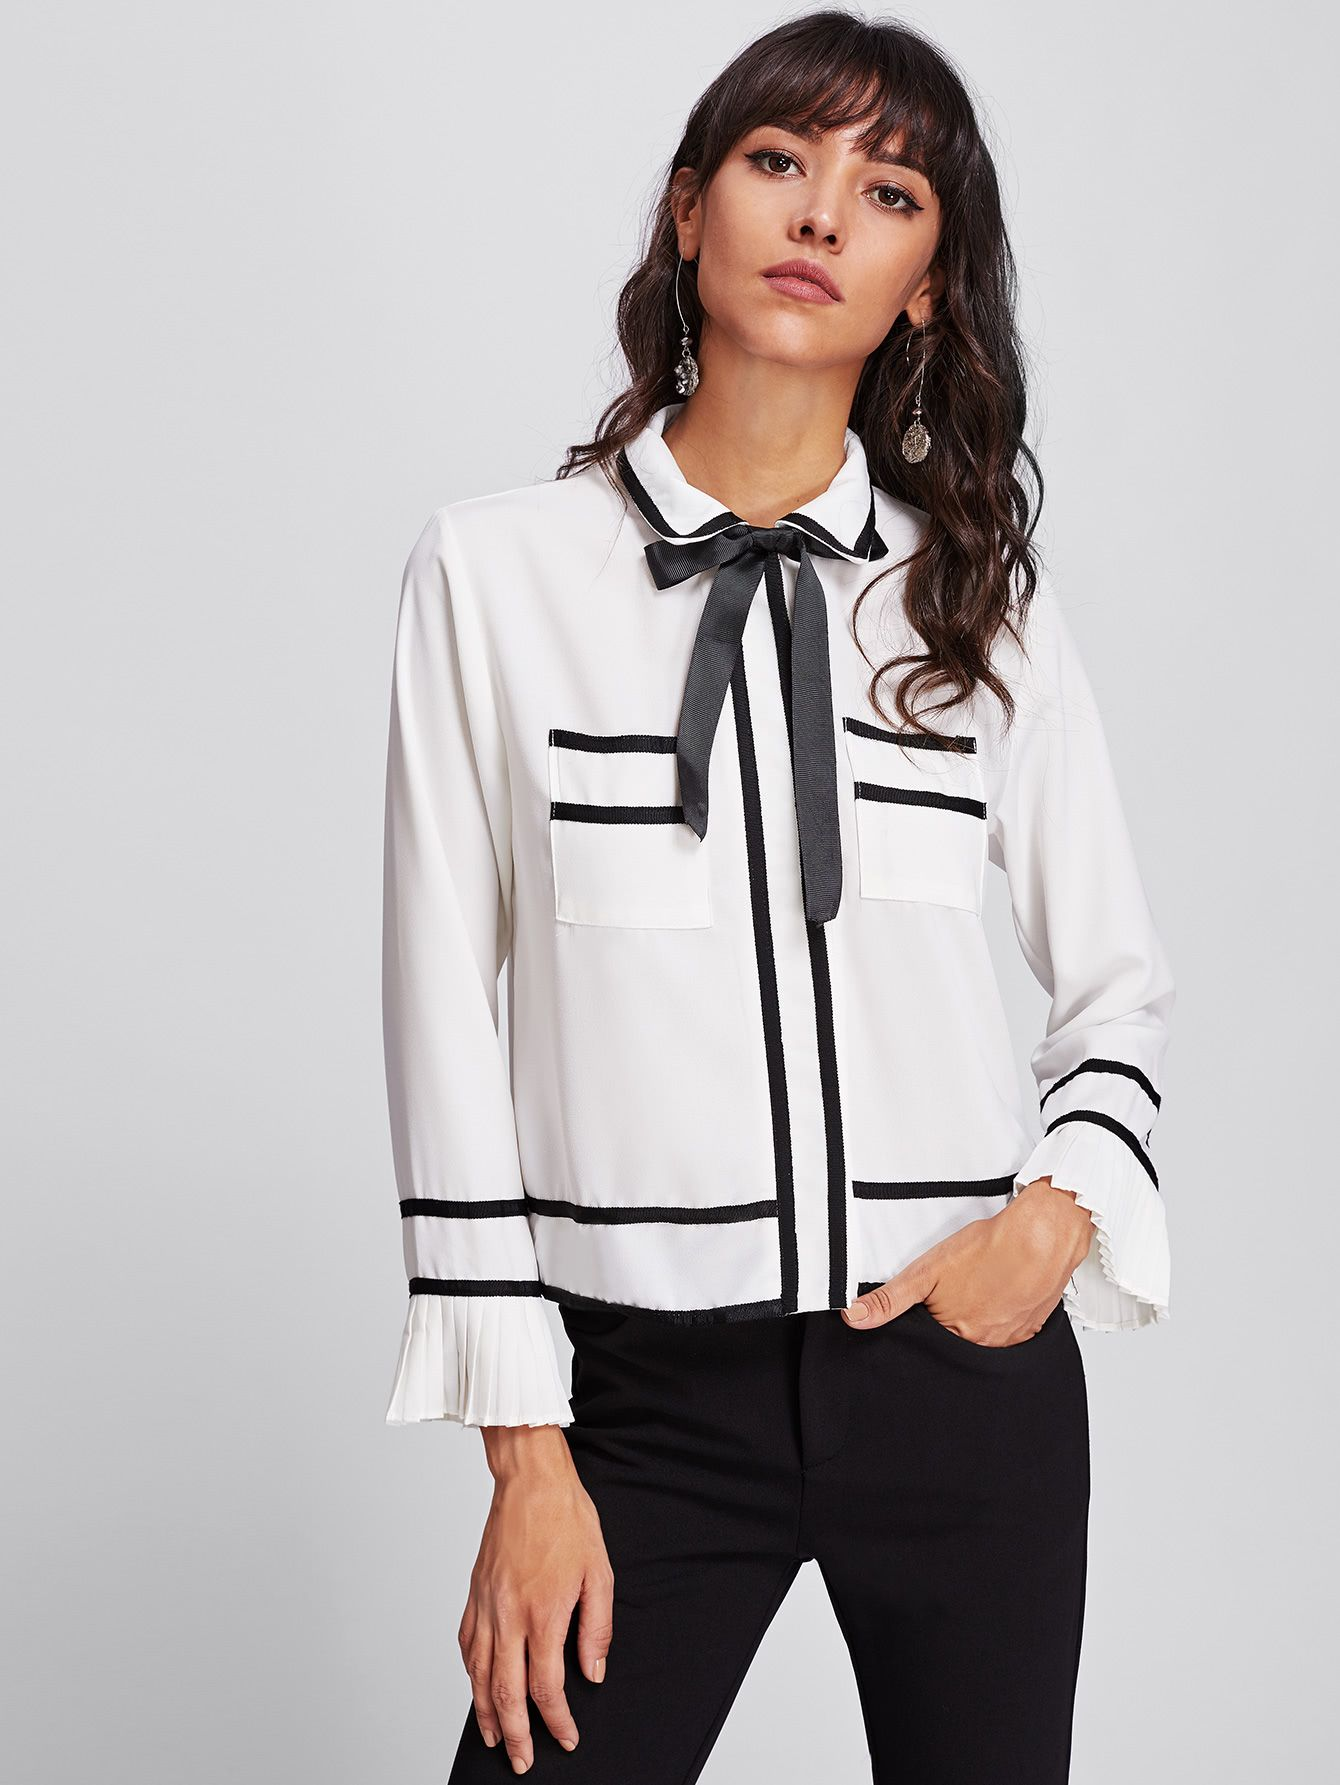 361be92338 Shop Contrast Trim Ruffle Cuff Bow Tie Neck Shirt online. SheIn offers  Contrast Trim Ruffle Cuff Bow Tie Neck Shirt & more to fit your fashionable  needs.